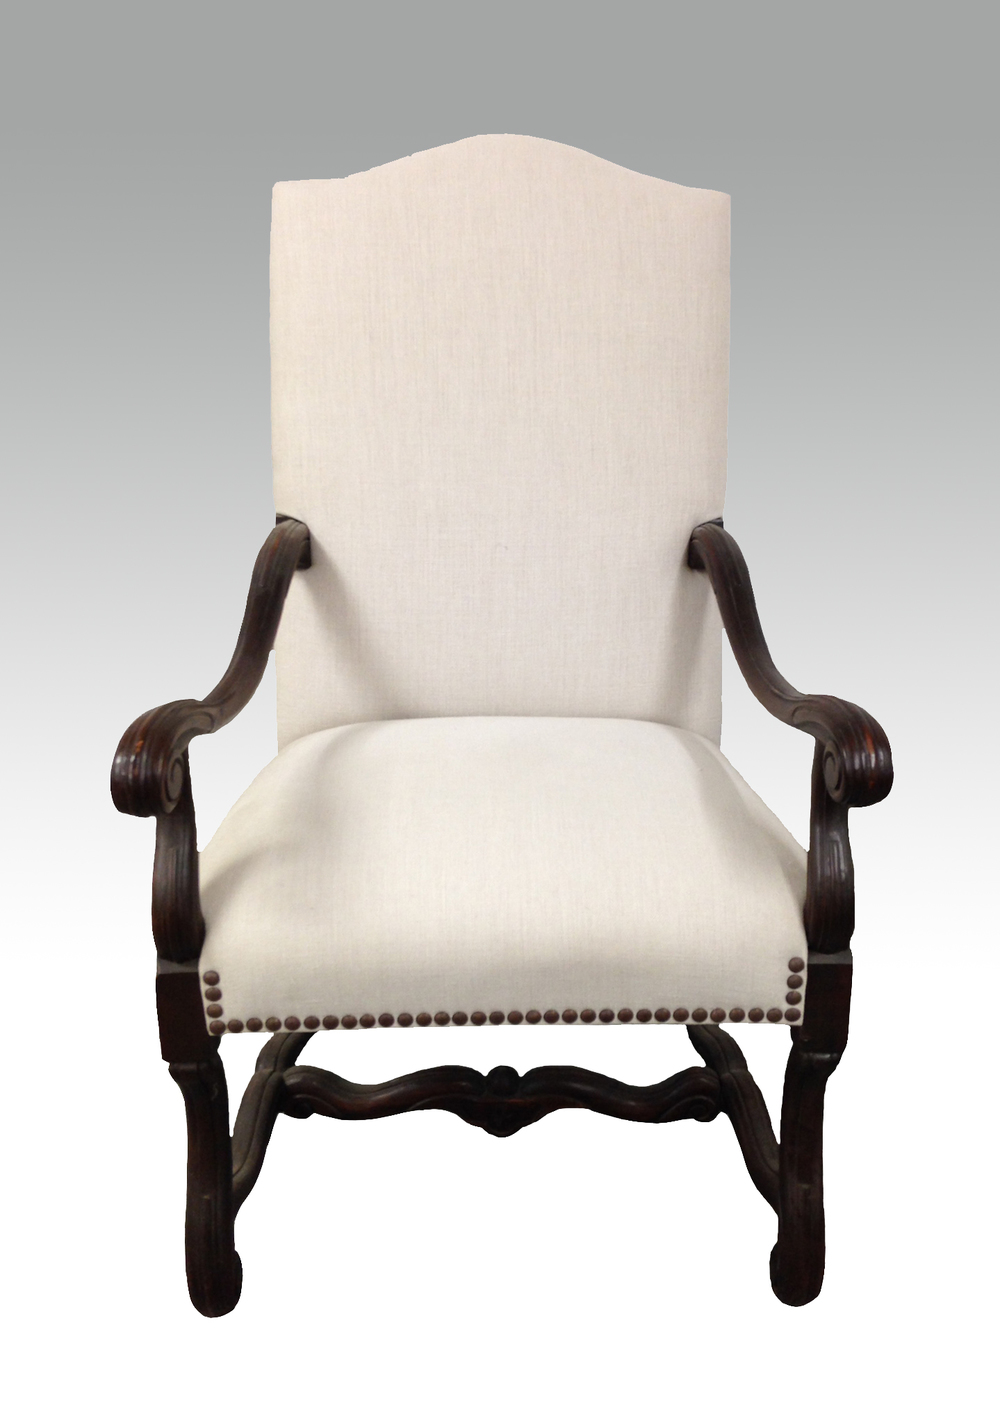 Arm chair 5.jpg